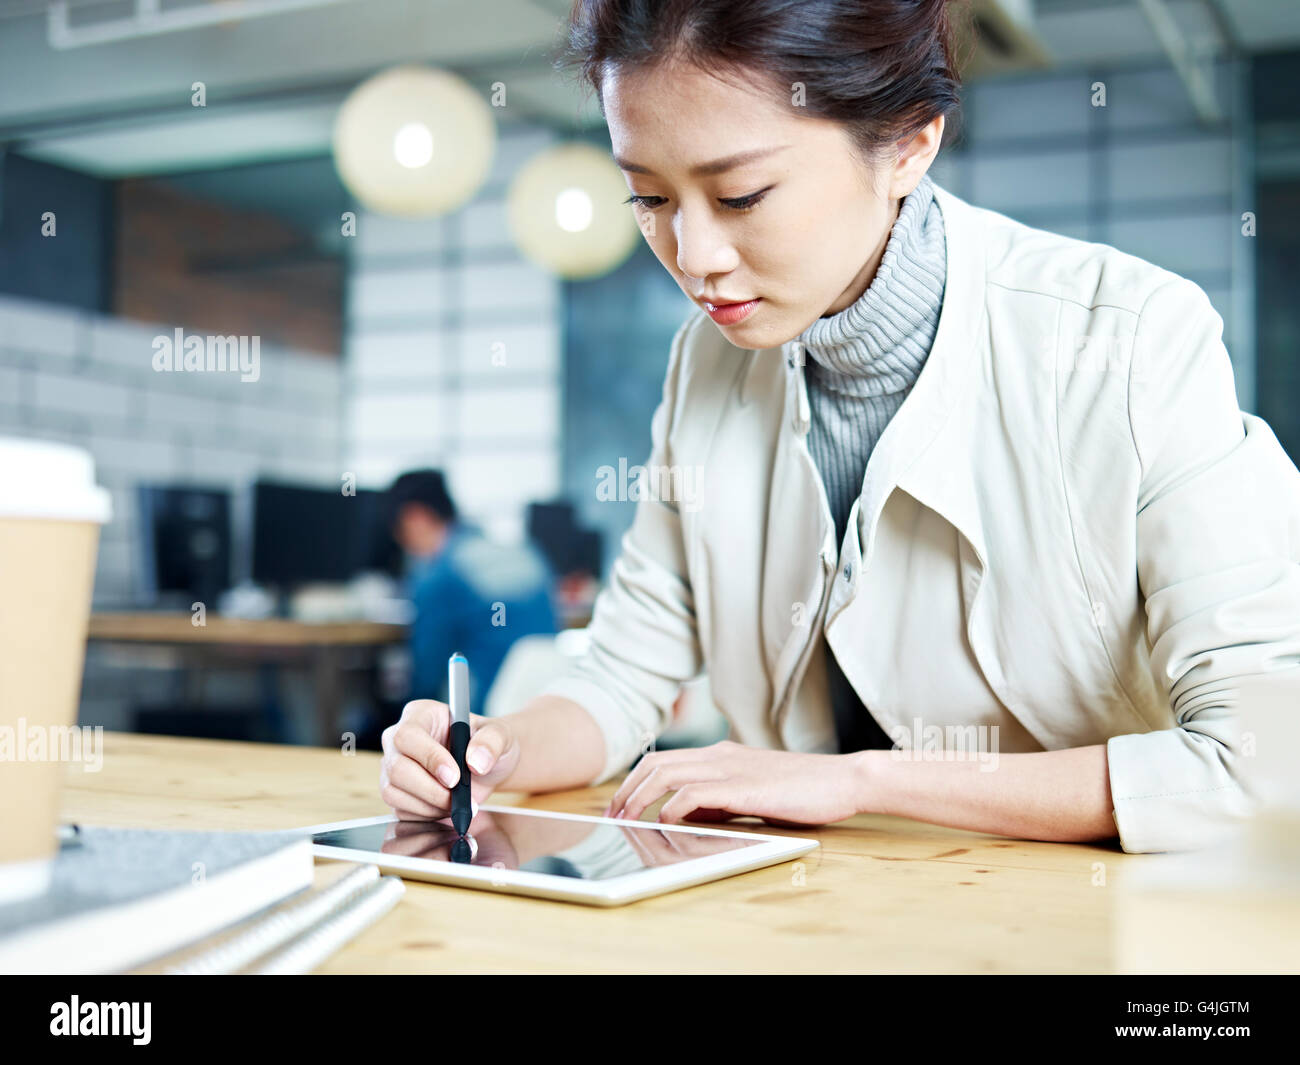 young asian designer working in studio using digital drawing pen and tablet. - Stock Image